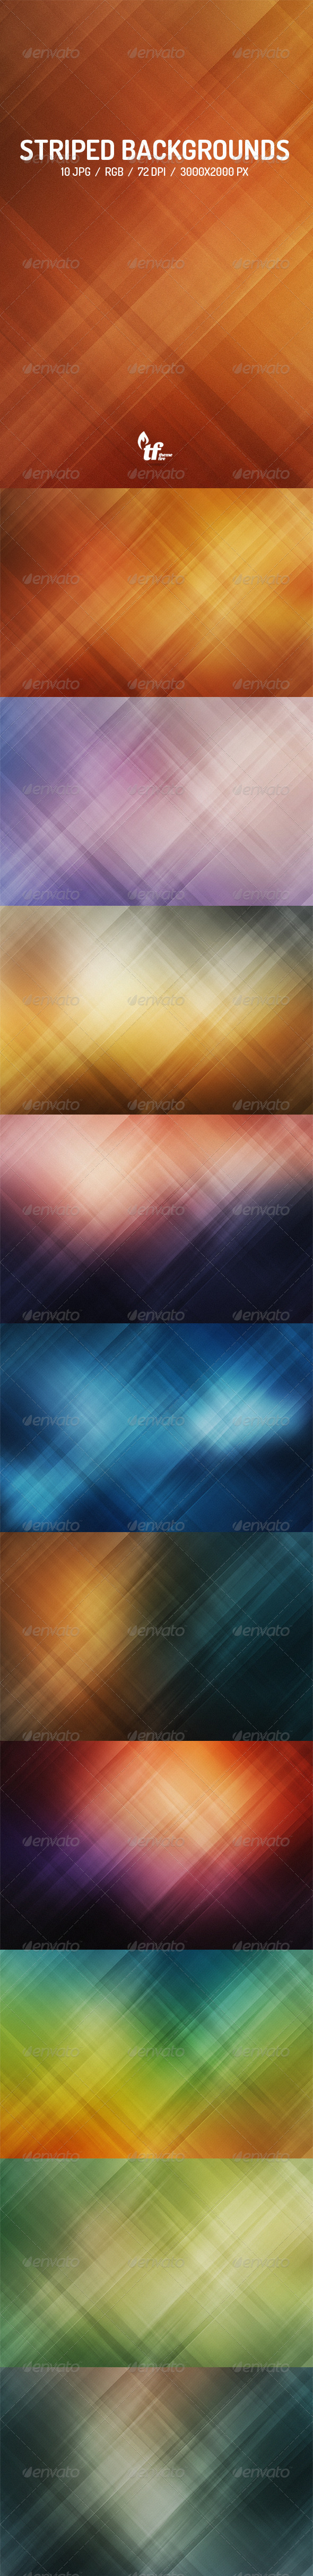 GraphicRiver Abstract Striped Backgrounds 7748780